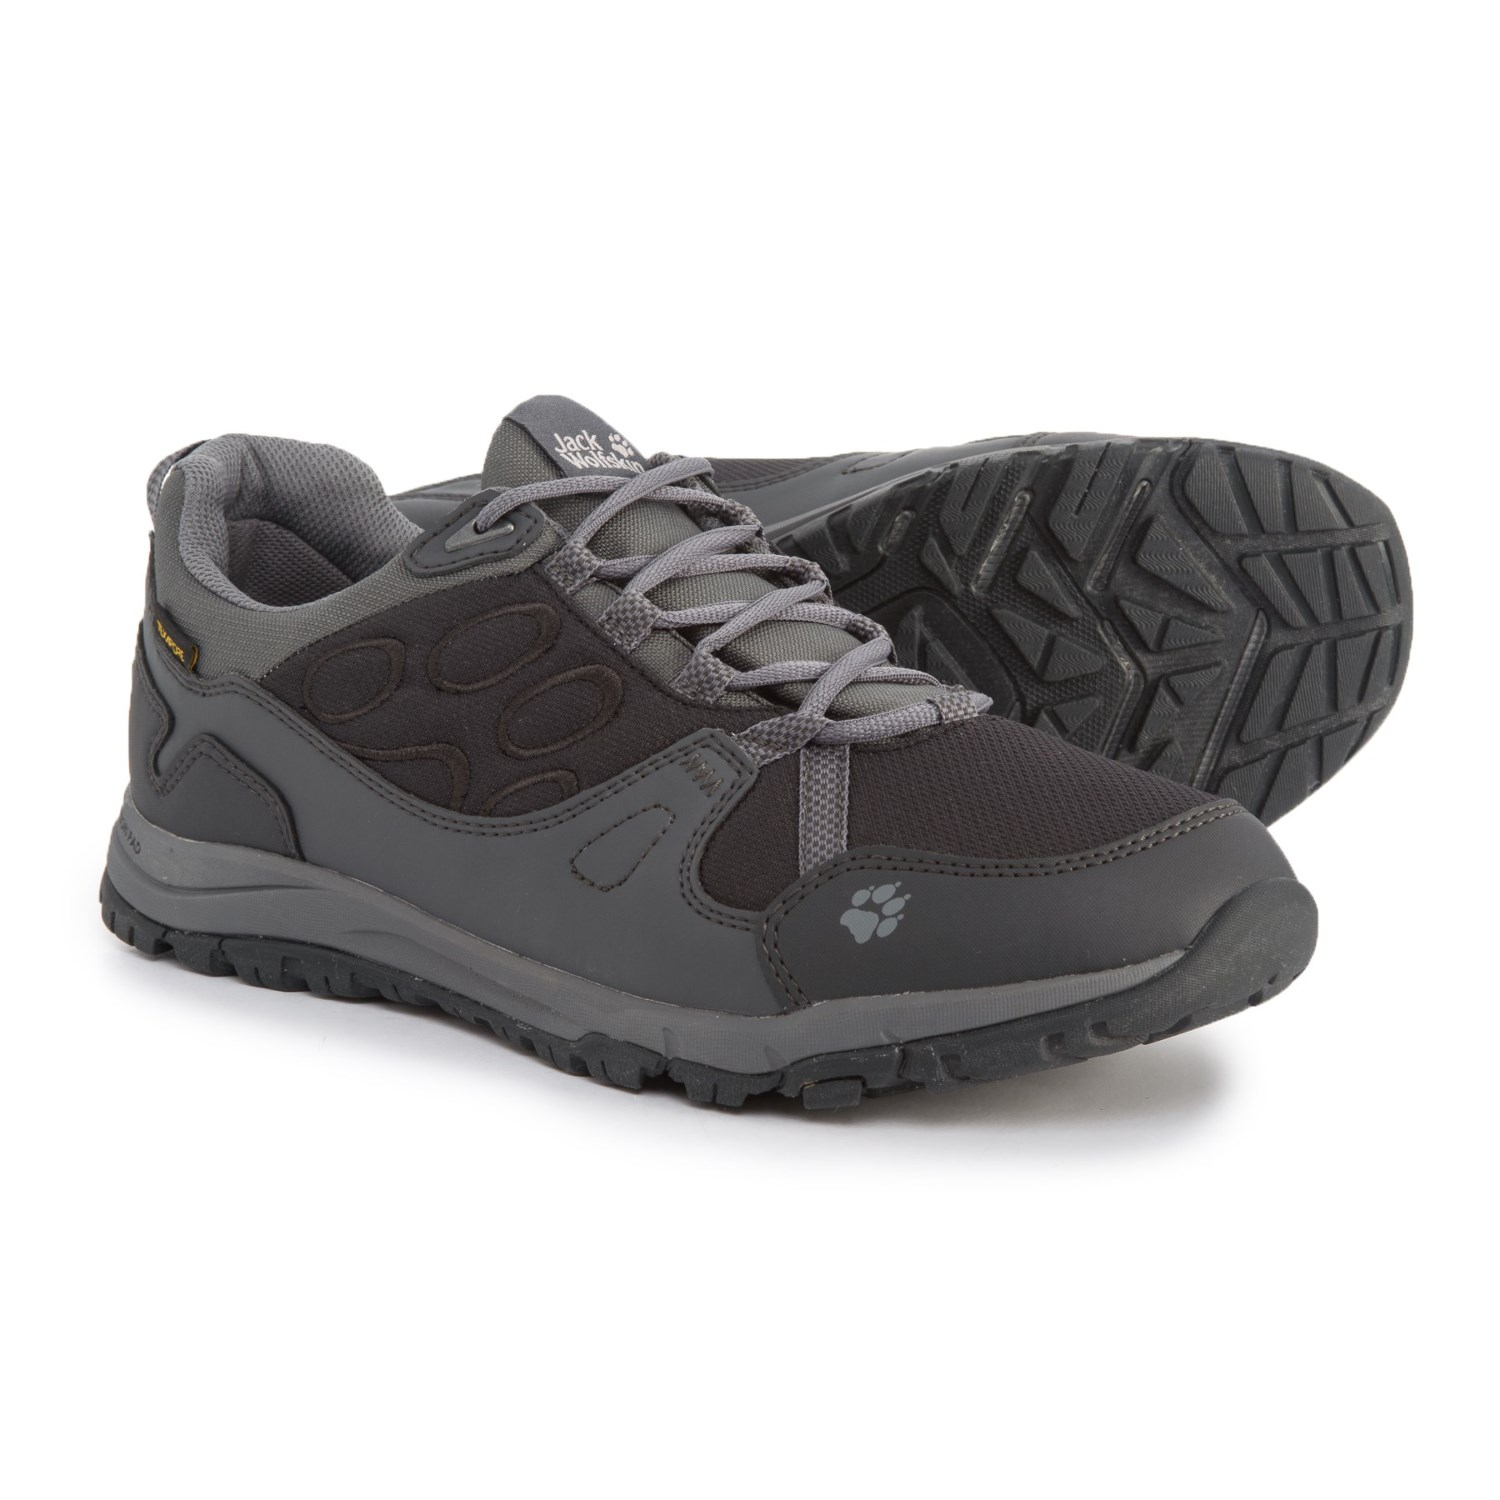 489d8af568e Jack Wolfskin Activate Texapore Low Trail Running Shoes - Waterproof (For  Women) in Phantom